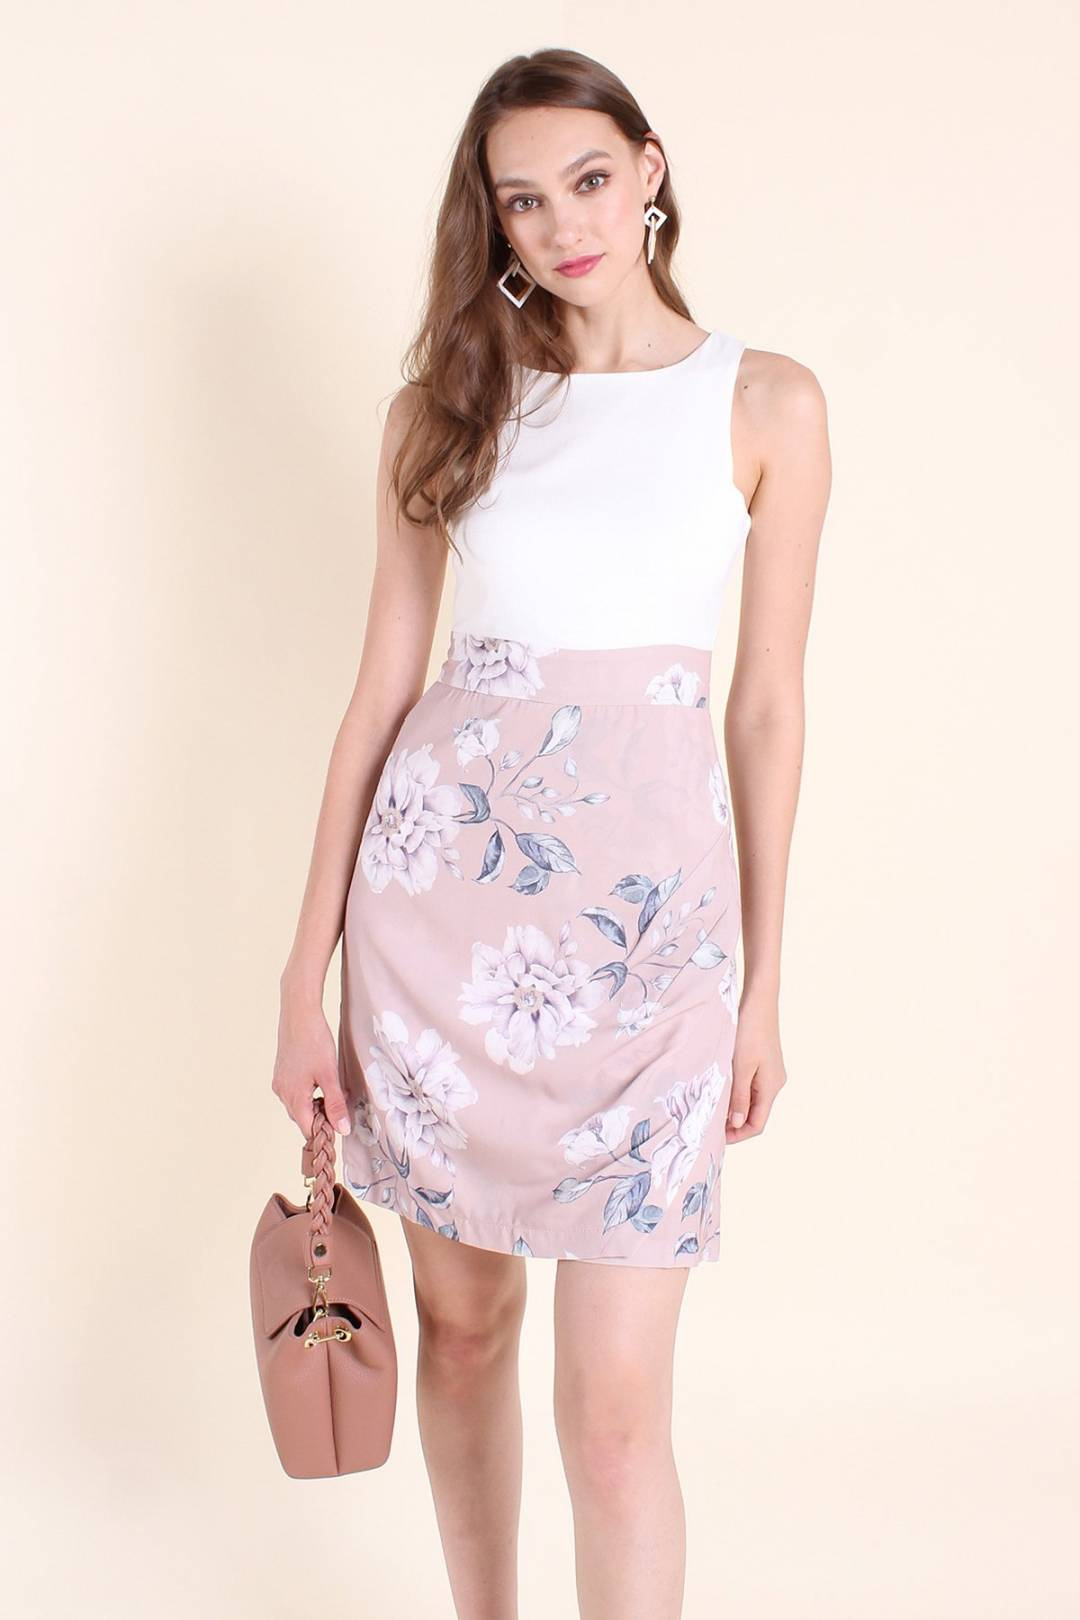 MADEBYNM GOLDIA FLORAL A-LINE DRESS IN WHITE/MAUVE [XS/S/M/L]